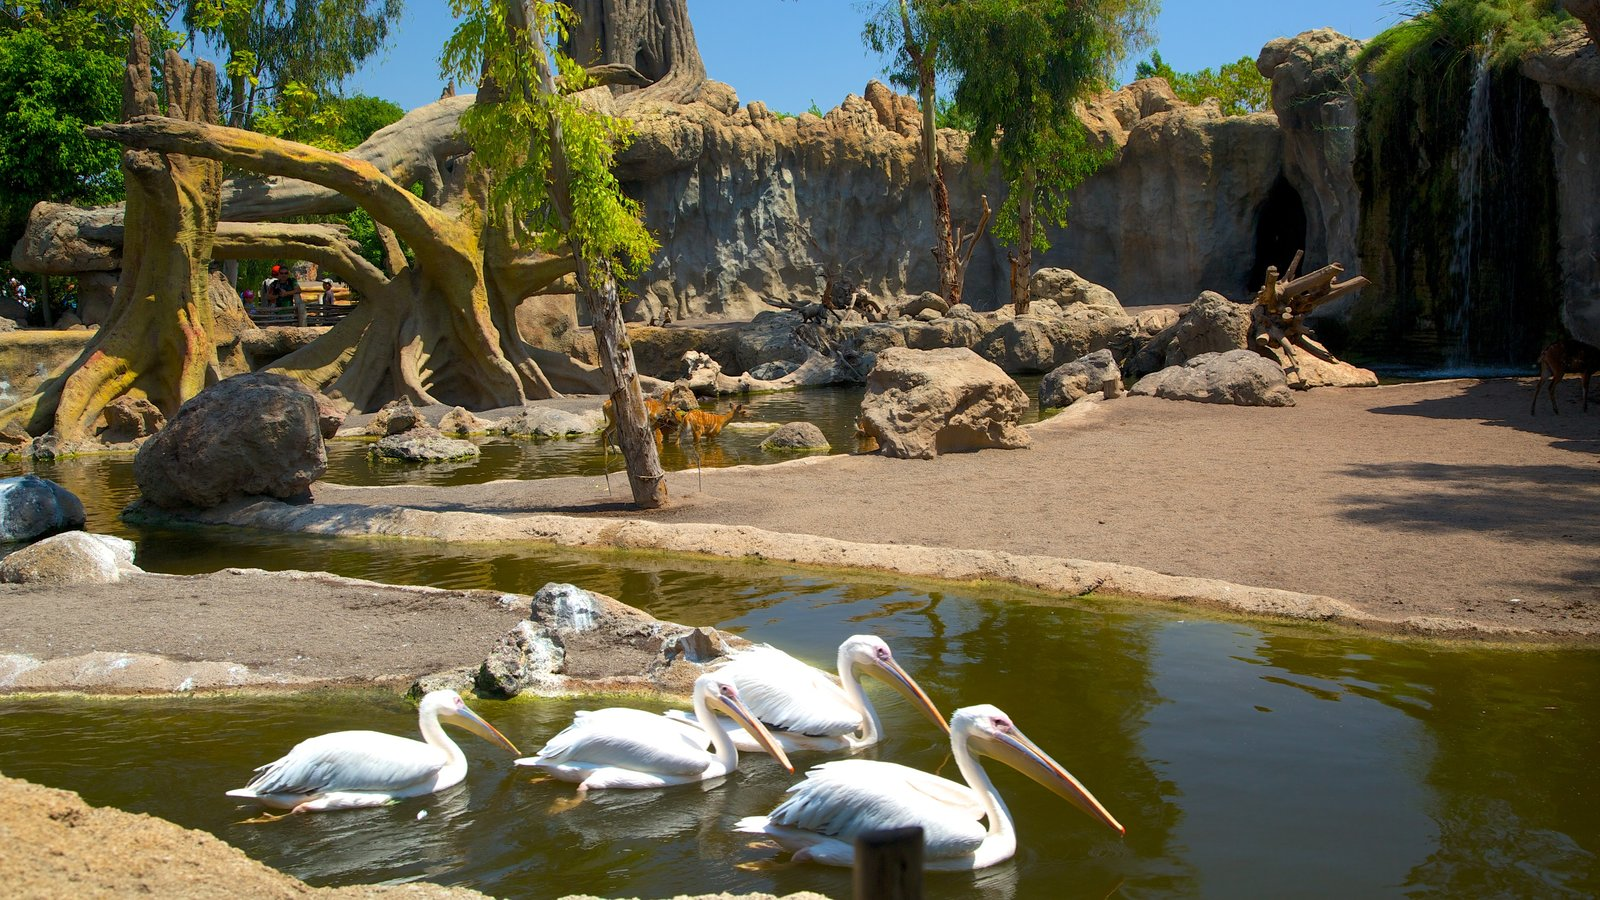 Bioparc valencia zoo pictures view photos images of bioparc valencia zoo - Bioparc de valencia ...